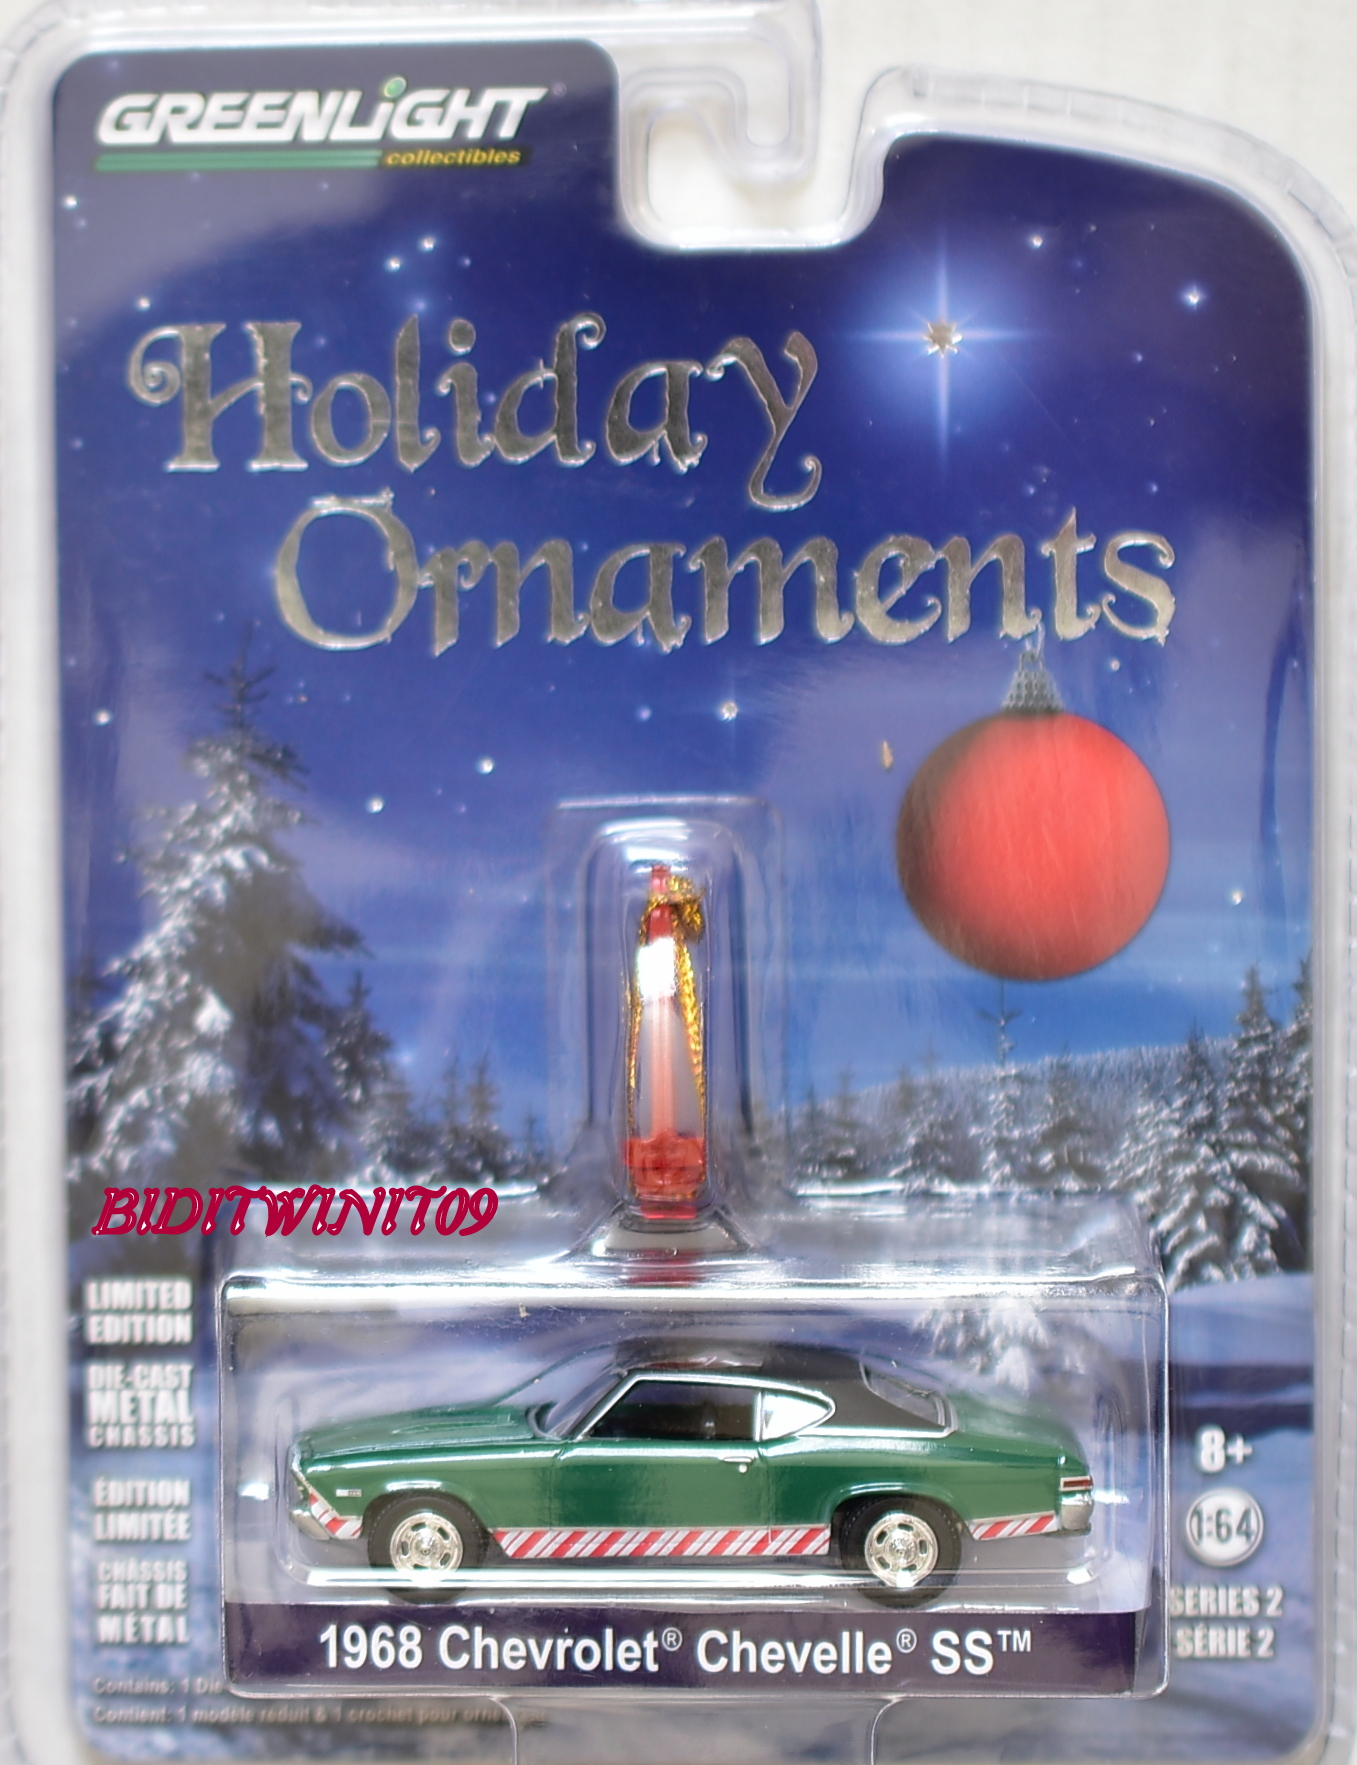 GREENLIGHT 2017 HOLIDAY ORNAMENTS 1968 CHEVROLET CHEVELLE SS SERIES 2